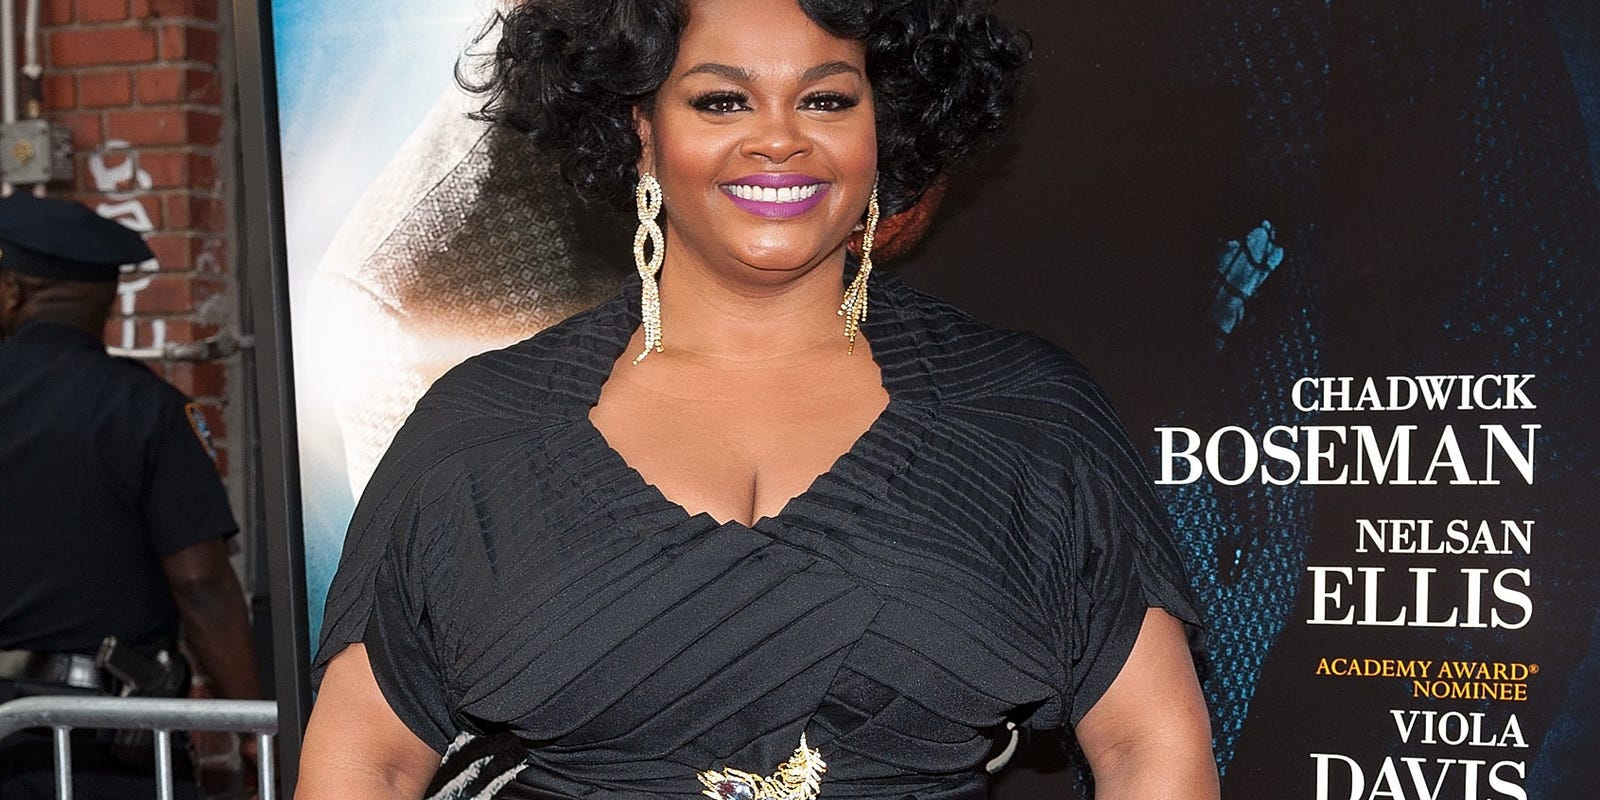 Jill Scott Has Two Intimate Photos Leaked Says Nude One Is Not Her